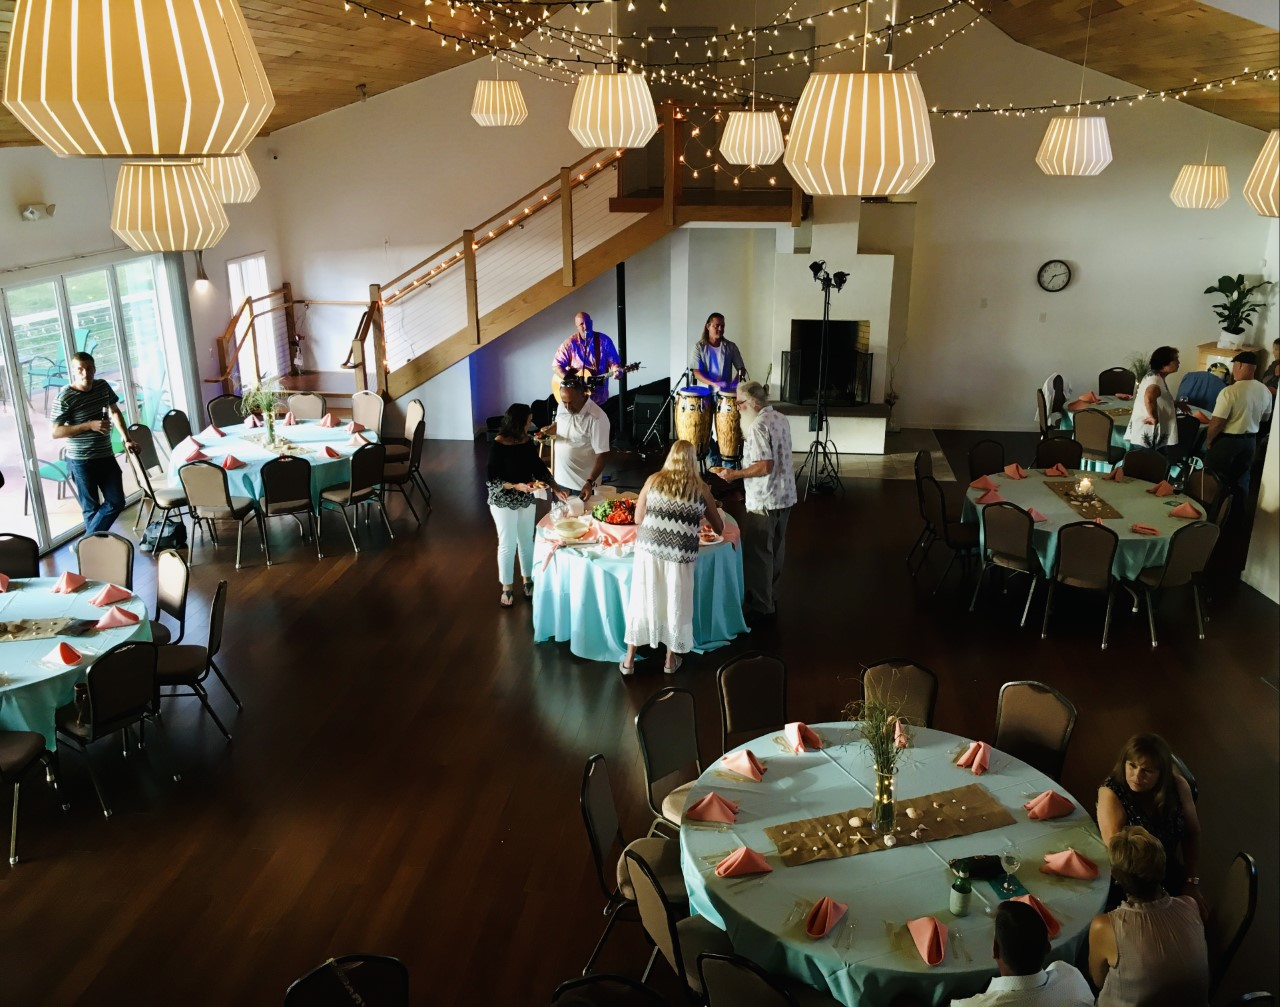 Inside the Inn ballroom with guest sitting at tables